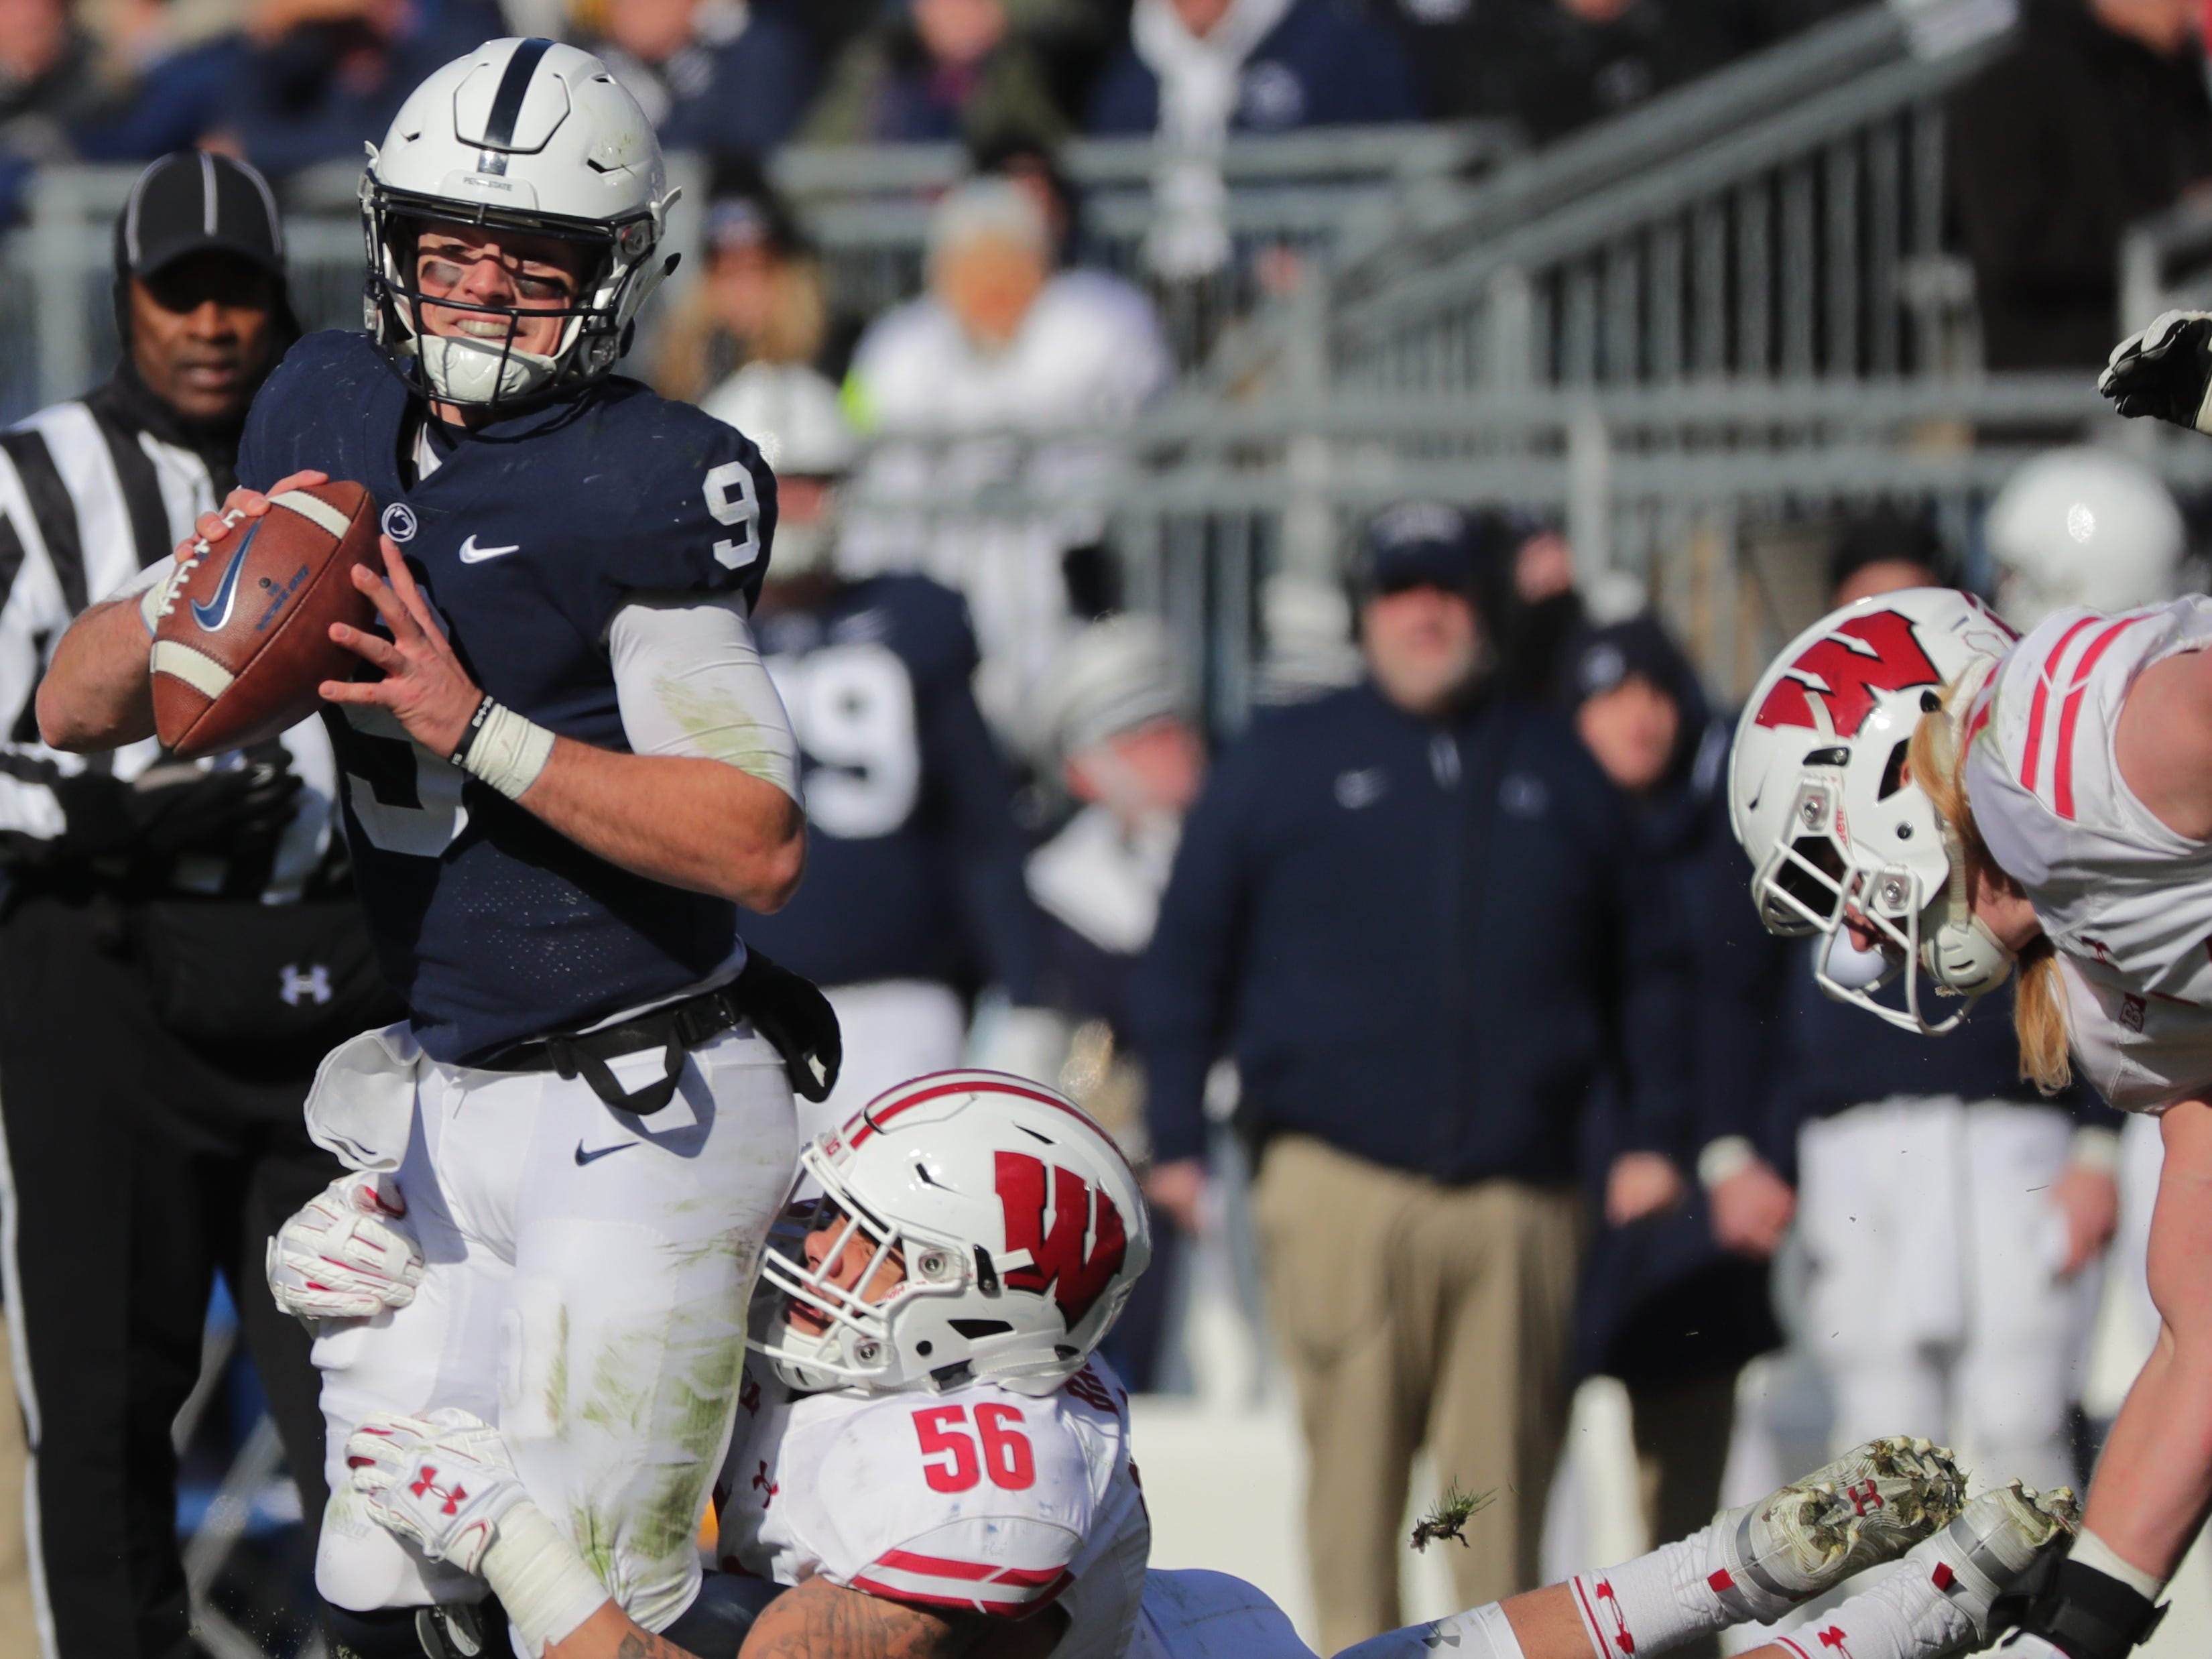 Penn State quarterback Trace McSorley is sacked by Wisconsin linebacker Zack Baun during the second  quarter Saturday.